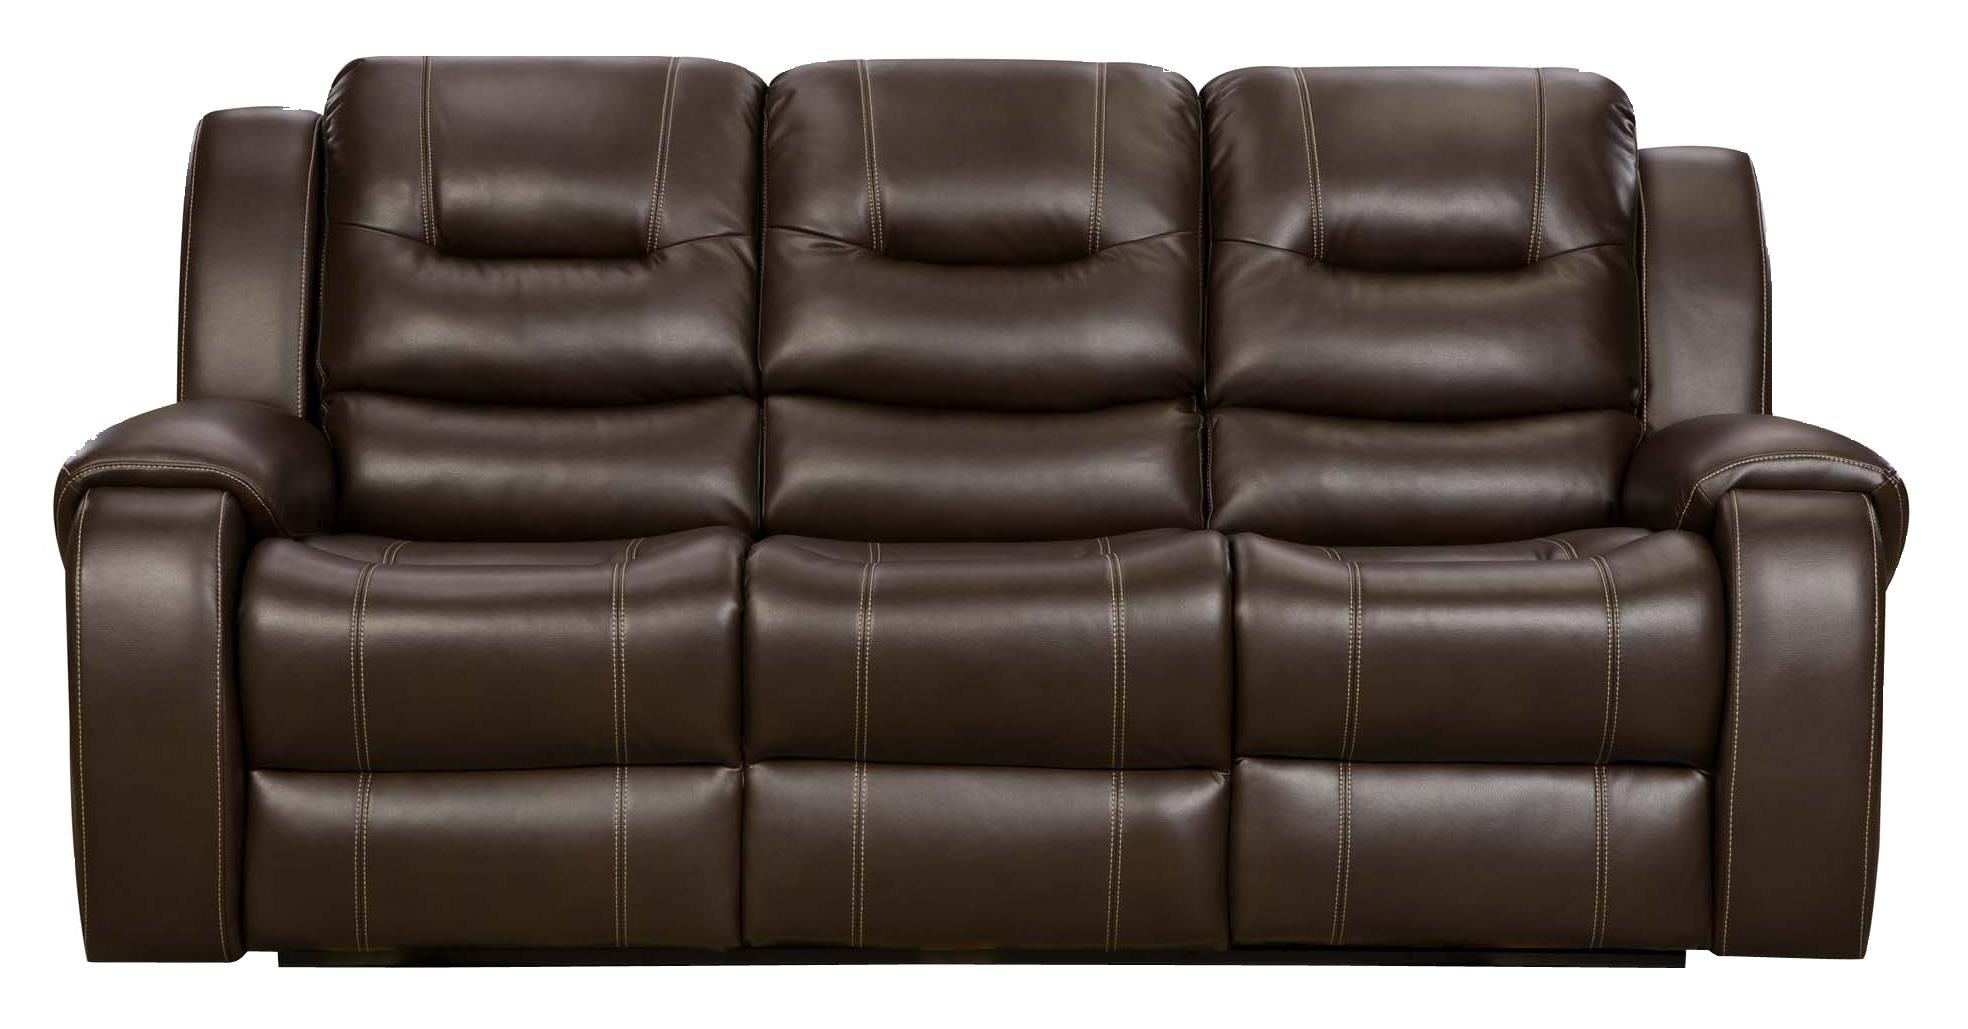 Corinthian 714 Reclining Sofa with 2 Reclining Seats J  : products2Fcorinthian2Fcolor2F71420motion71401 30 made out b0jpgscalebothampwidth500ampheight500ampfsharpen25ampdown from www.jj-furniture.com size 500 x 500 jpeg 24kB